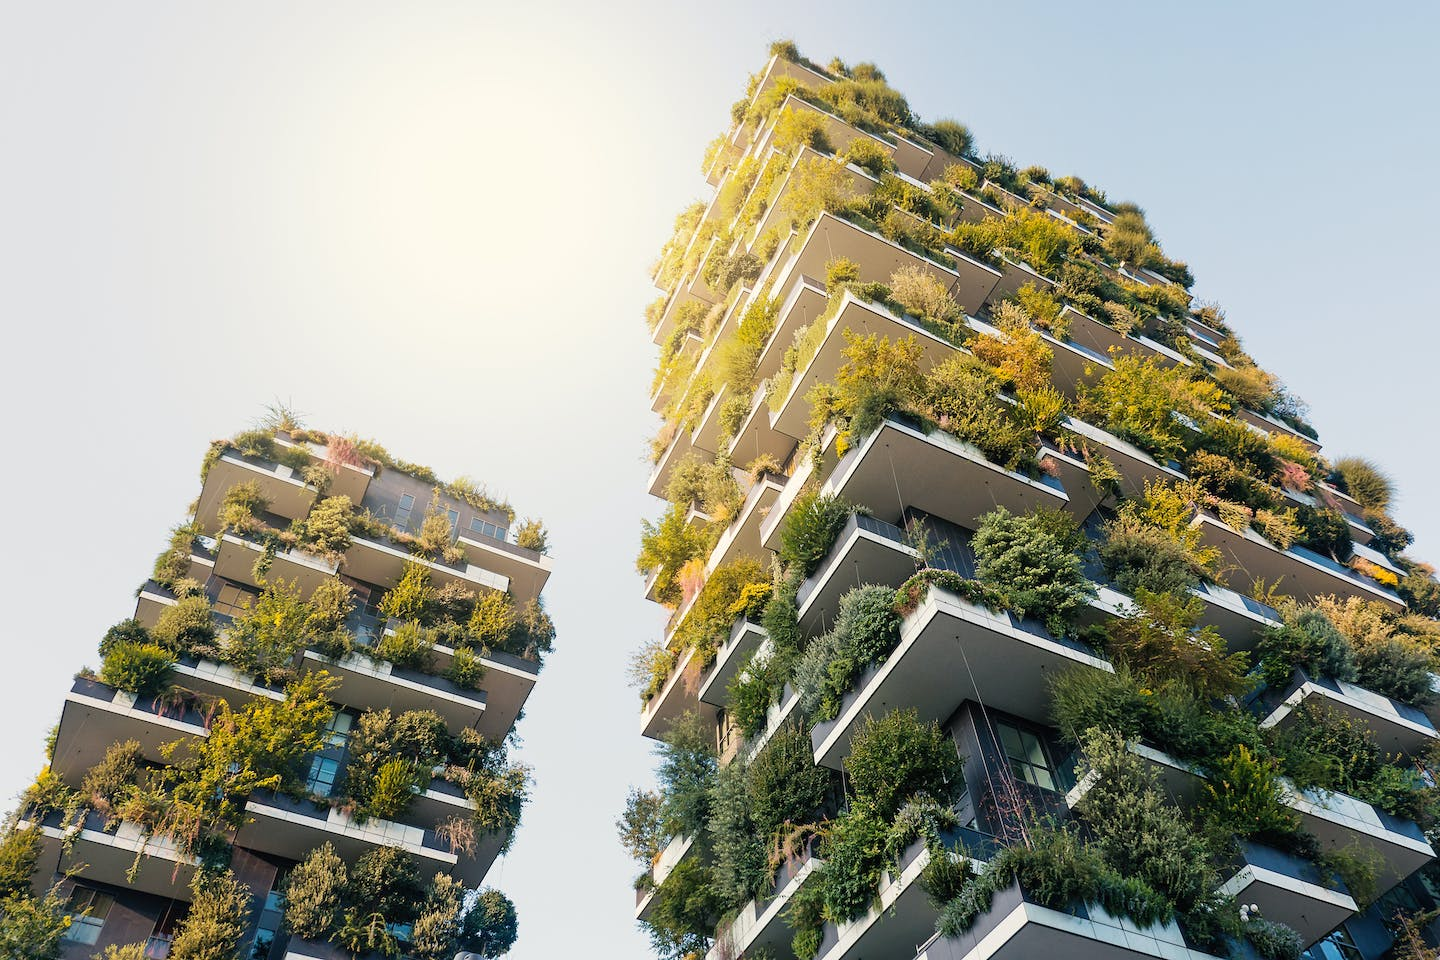 Re-imagining a brighter future: green buildings with urban farming. Image: Olam International